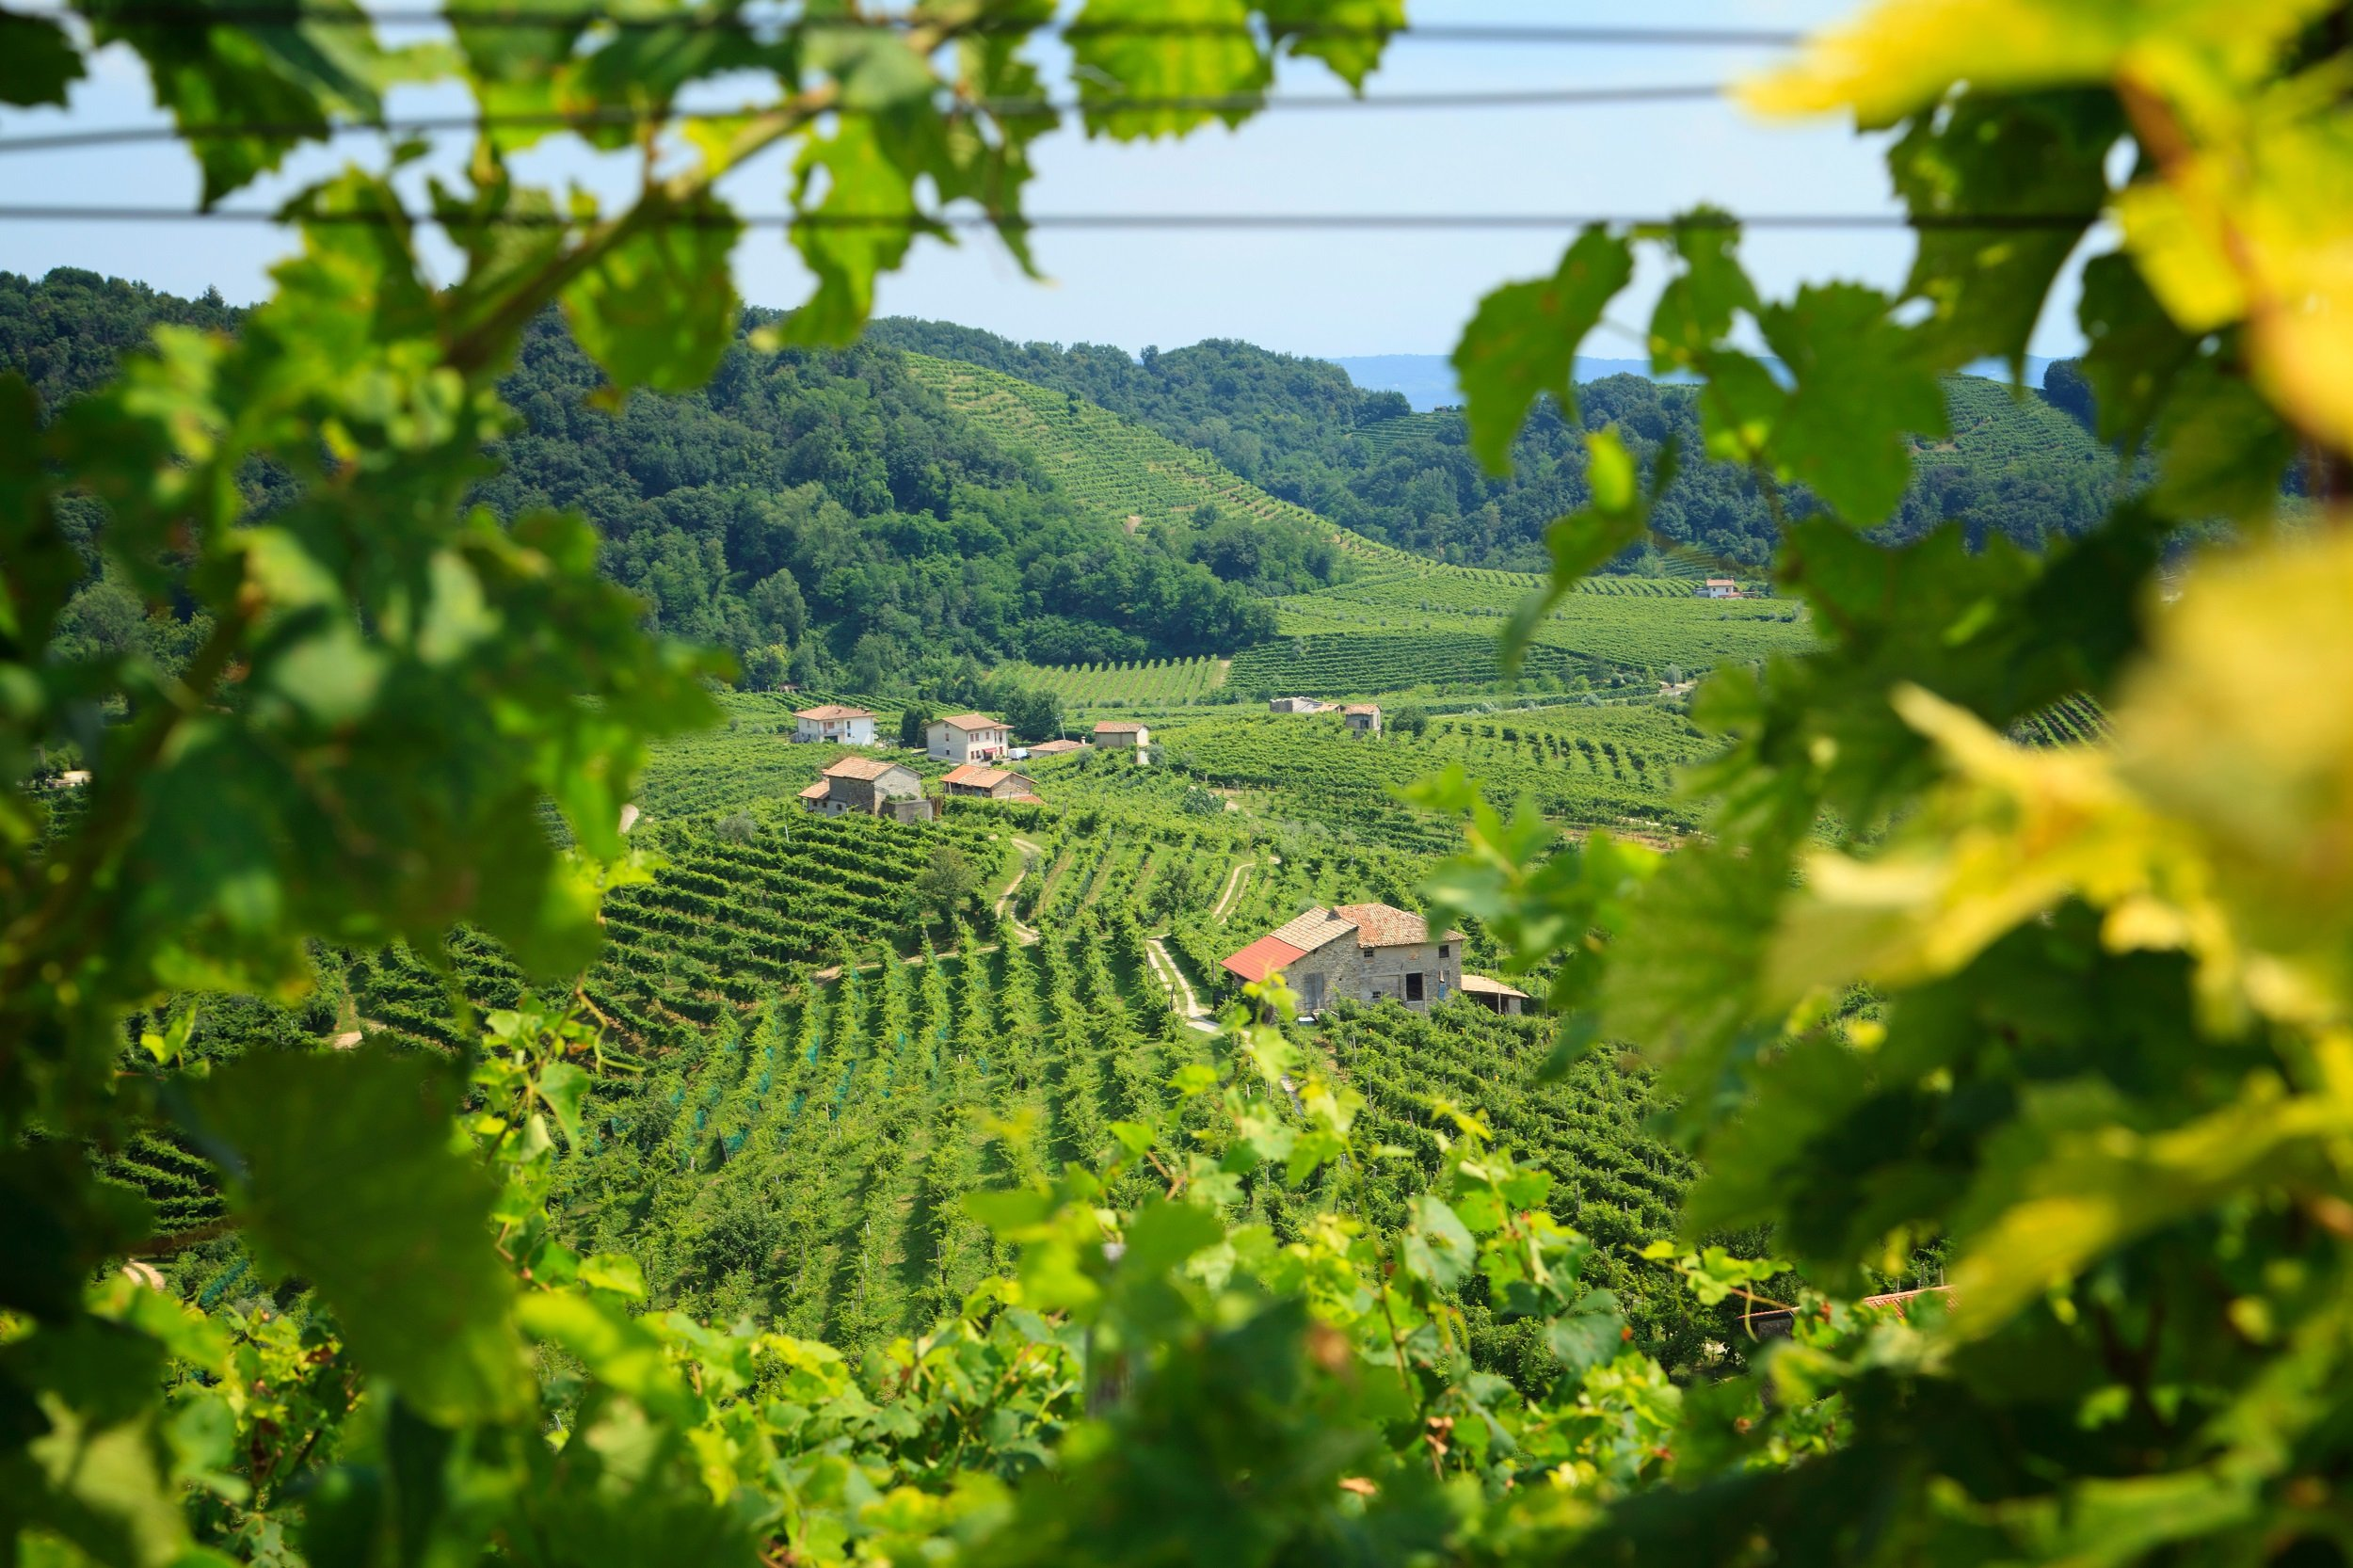 Join The Prosecco Tasting Tour From Venice On The 13 Day Italy Food & Wine Journey Tour Package